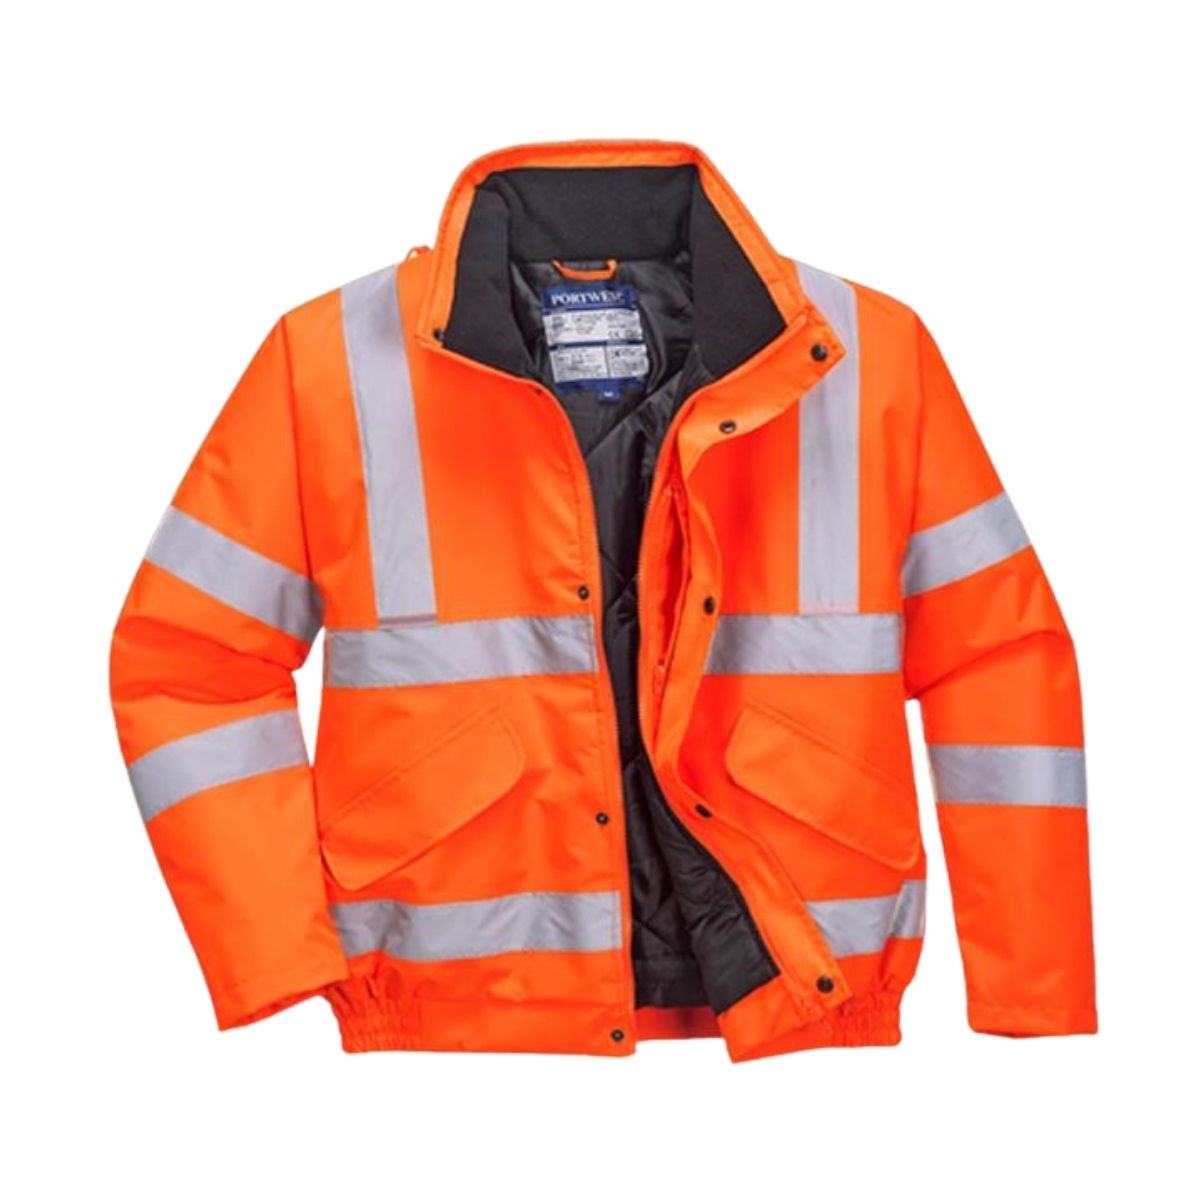 HV1007 High Visibility Class 3 Bomber Jacket